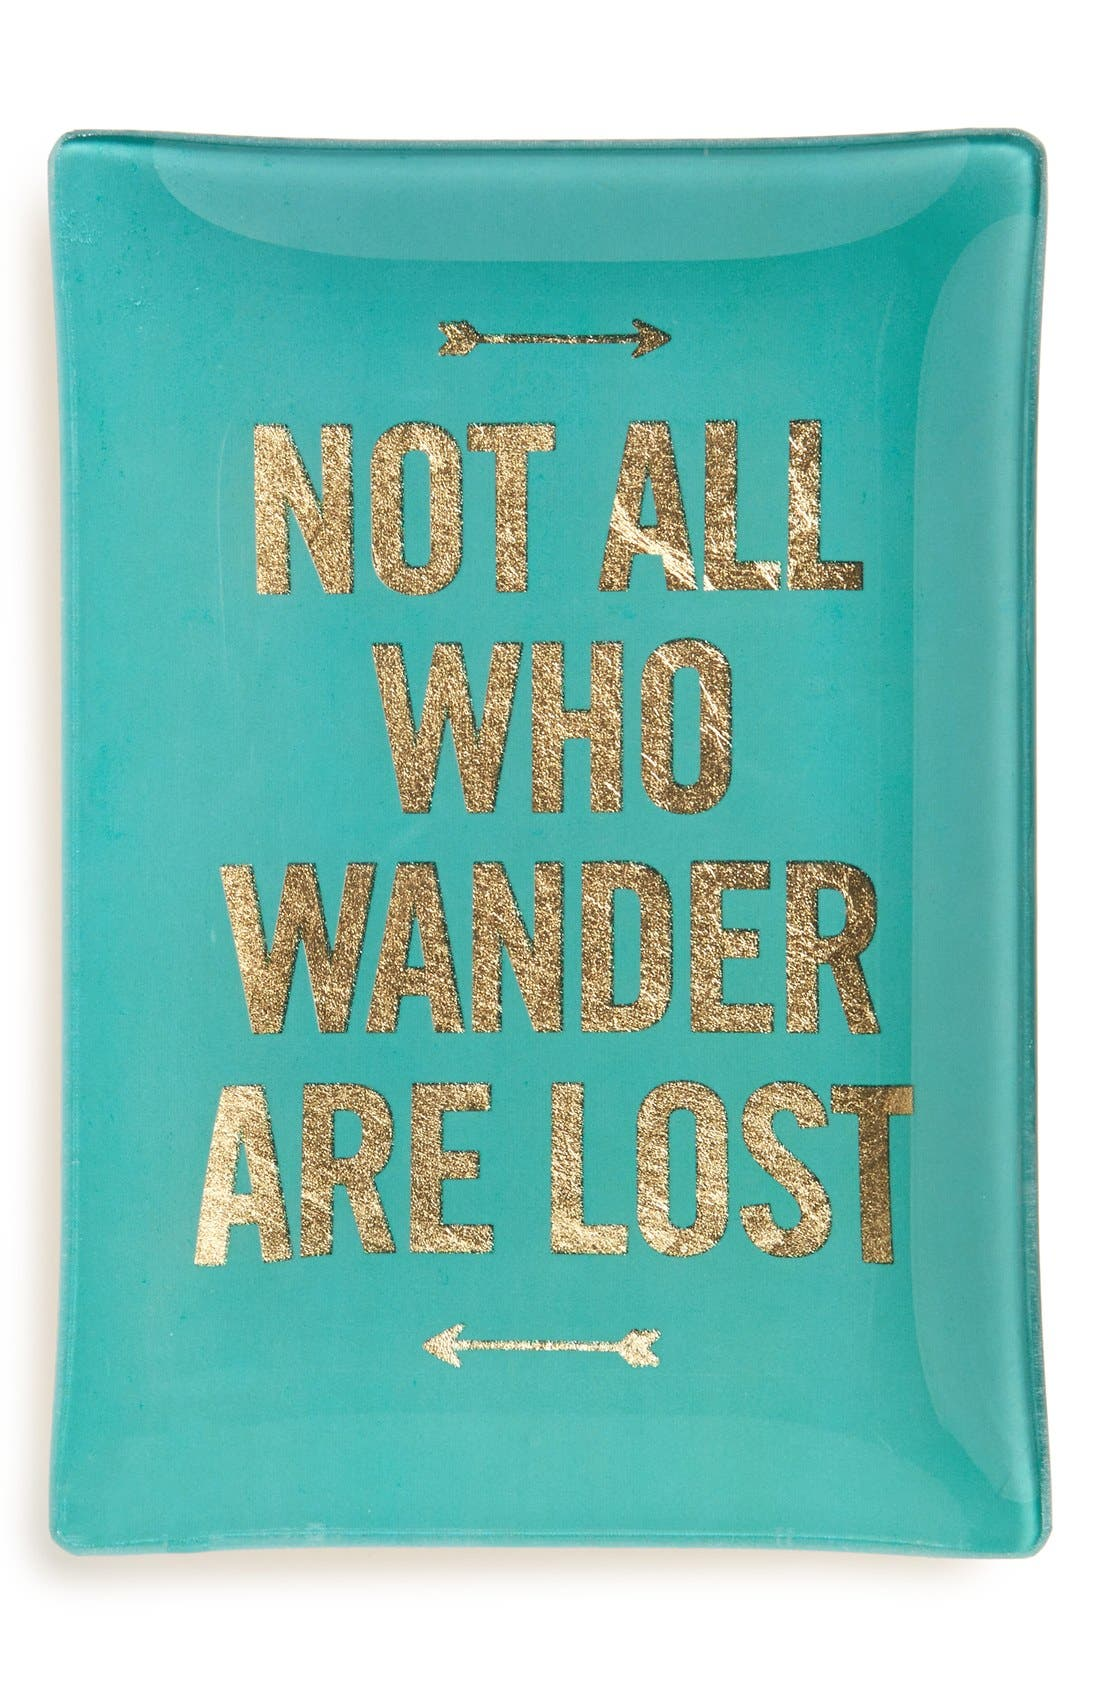 Alternate Image 1 Selected - Fringe Studio 'Not All Who Wander Are Lost' Glass Trinket Tray